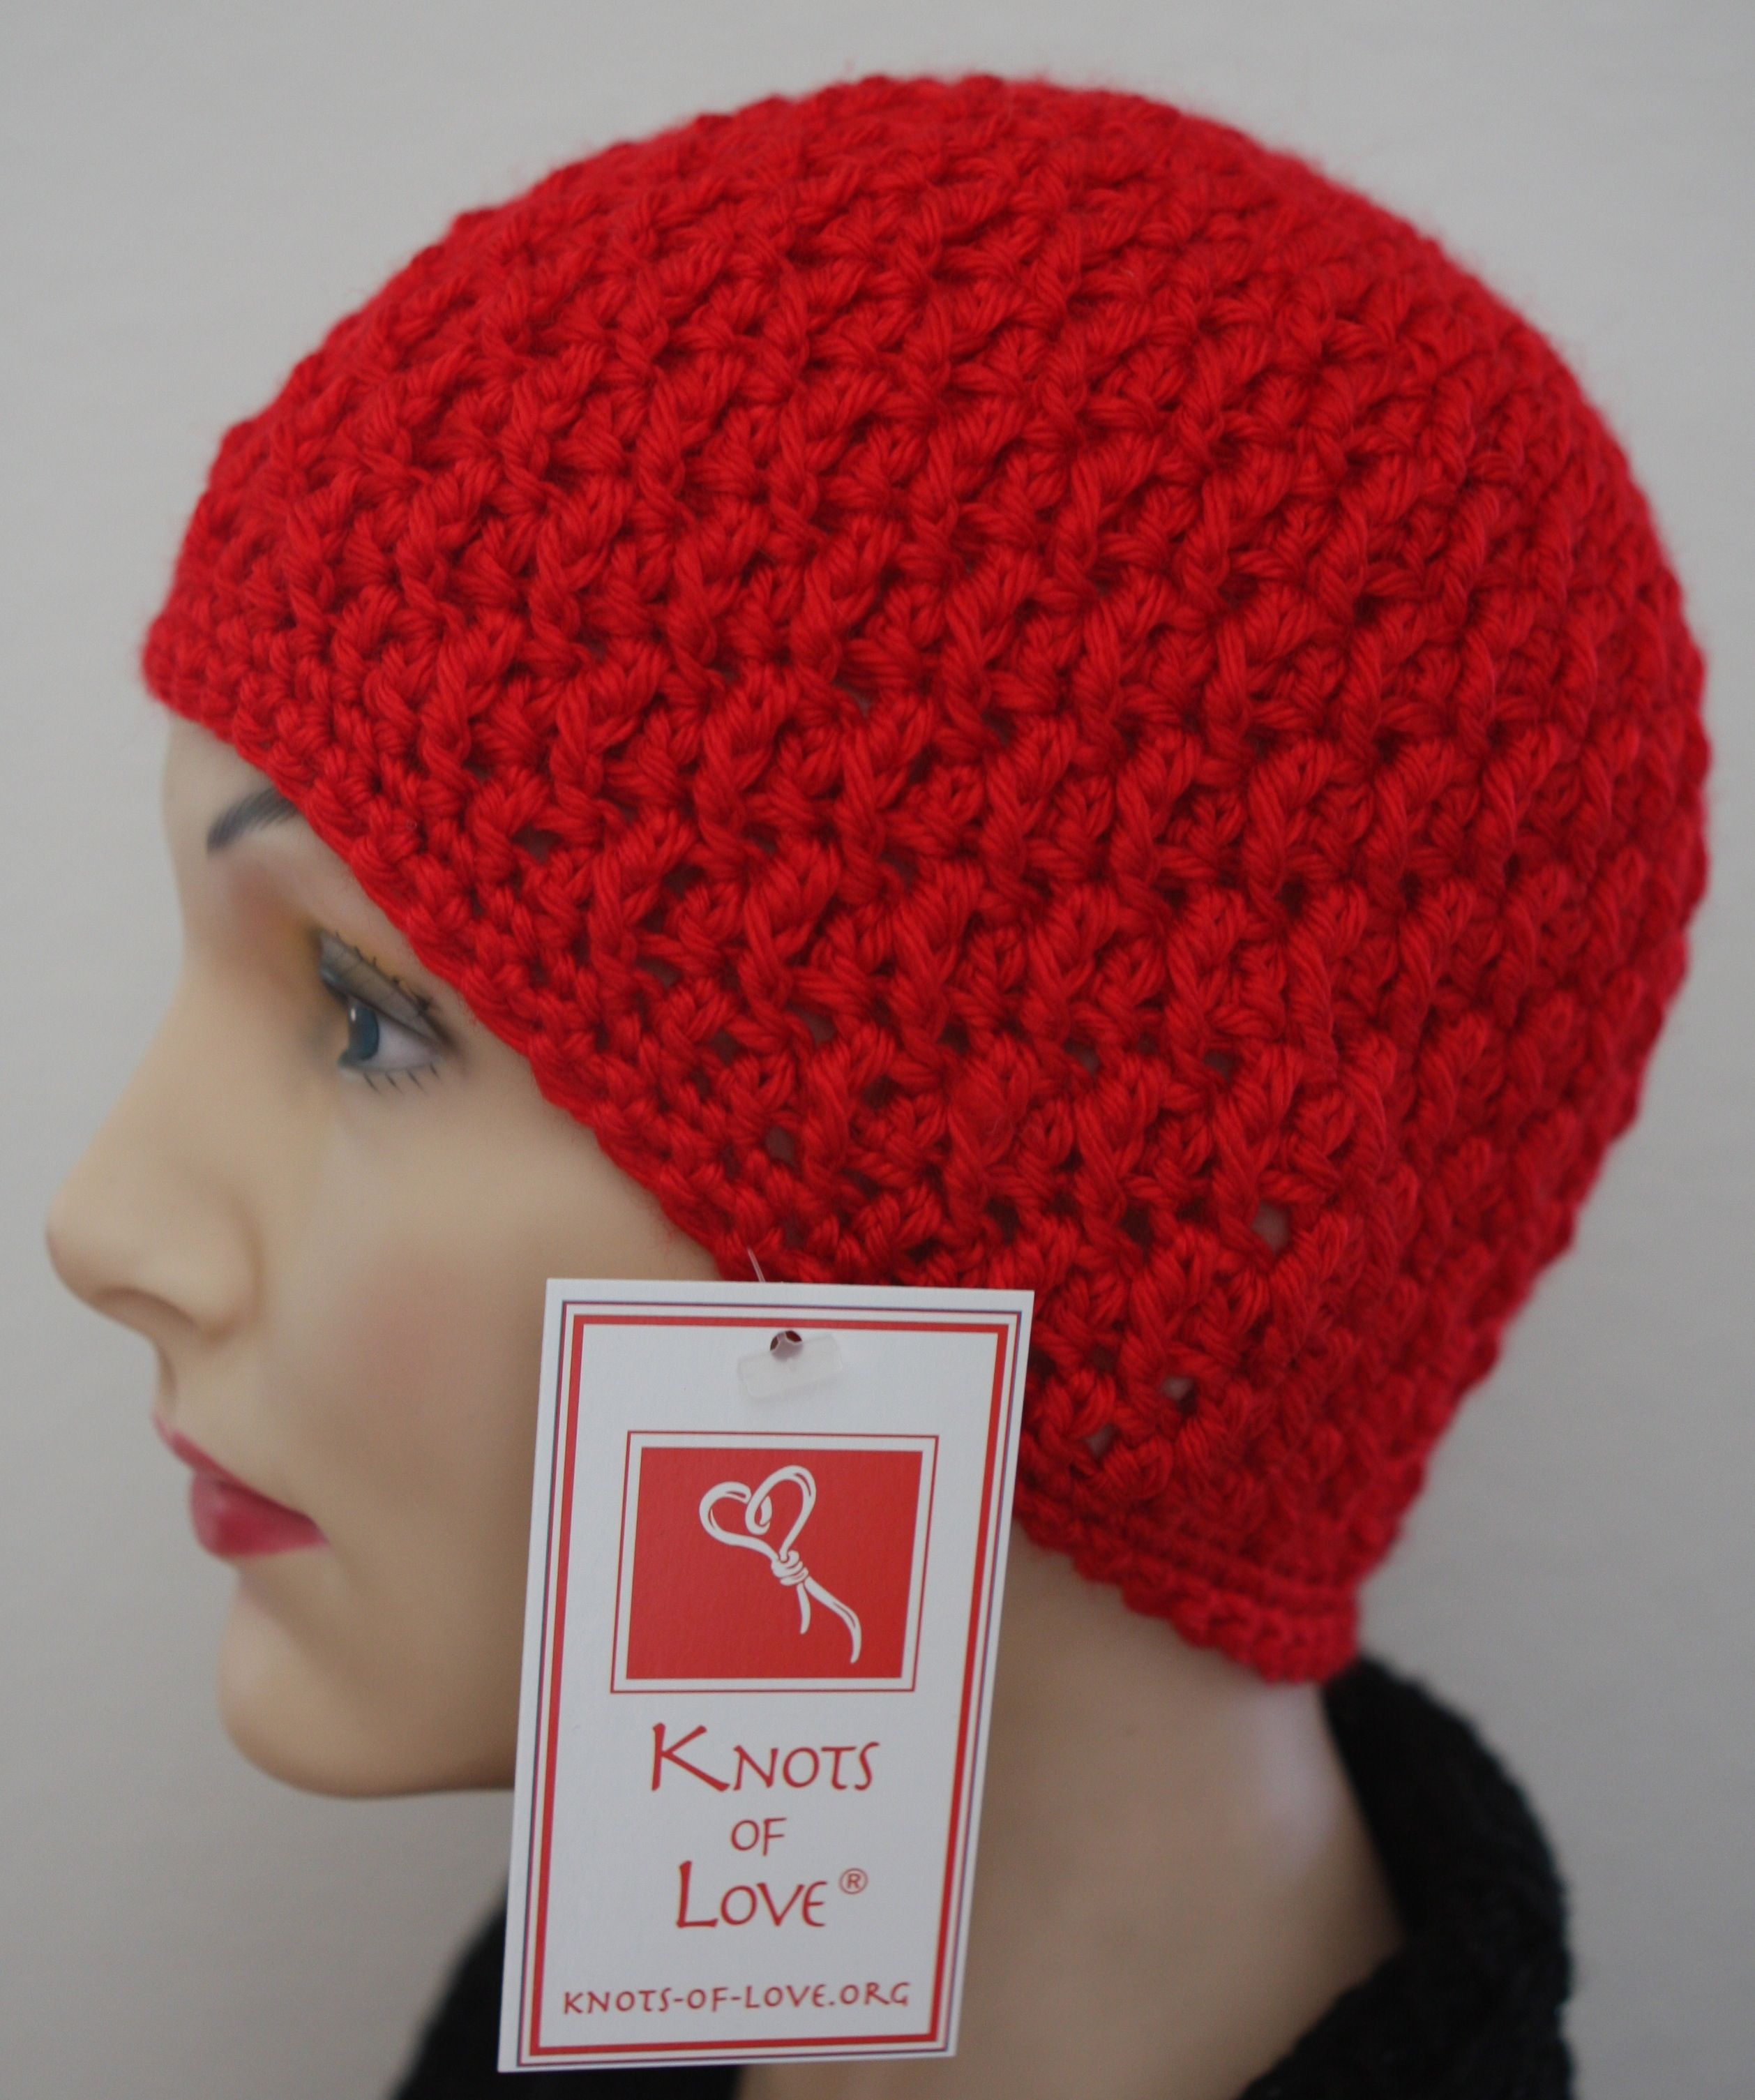 I got a free knit hat from \